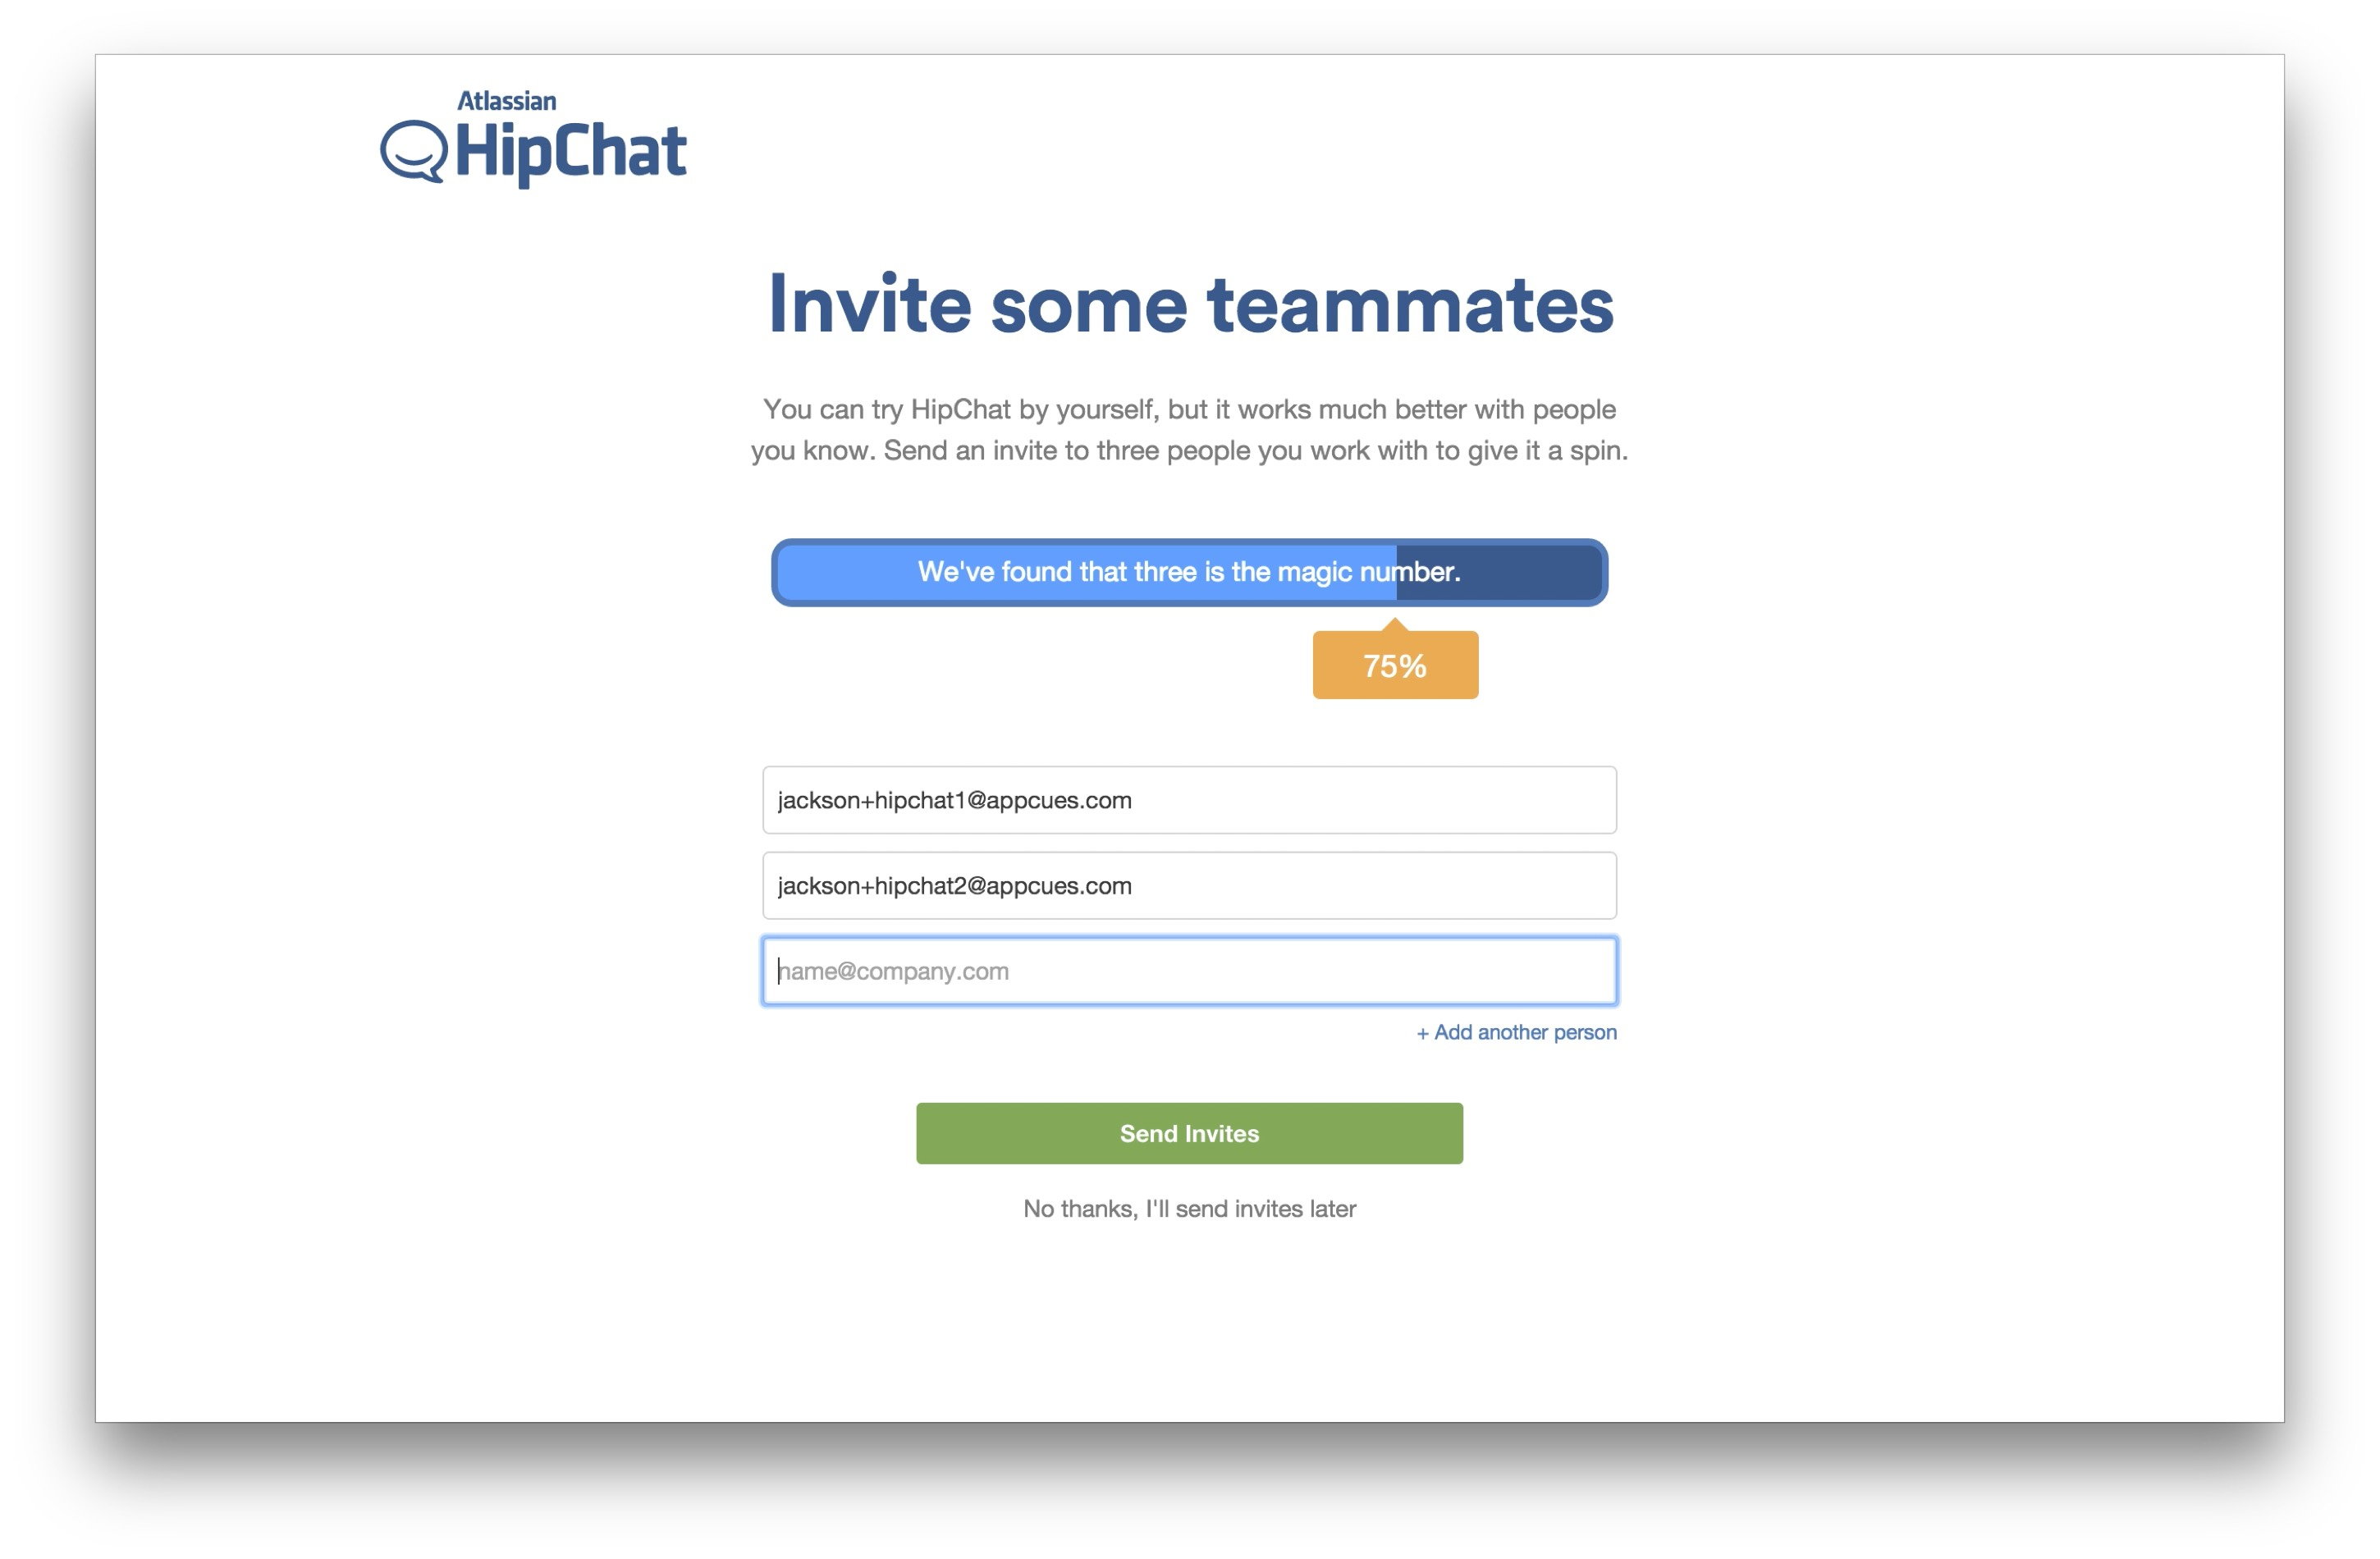 Hipchat invite tooltip 3